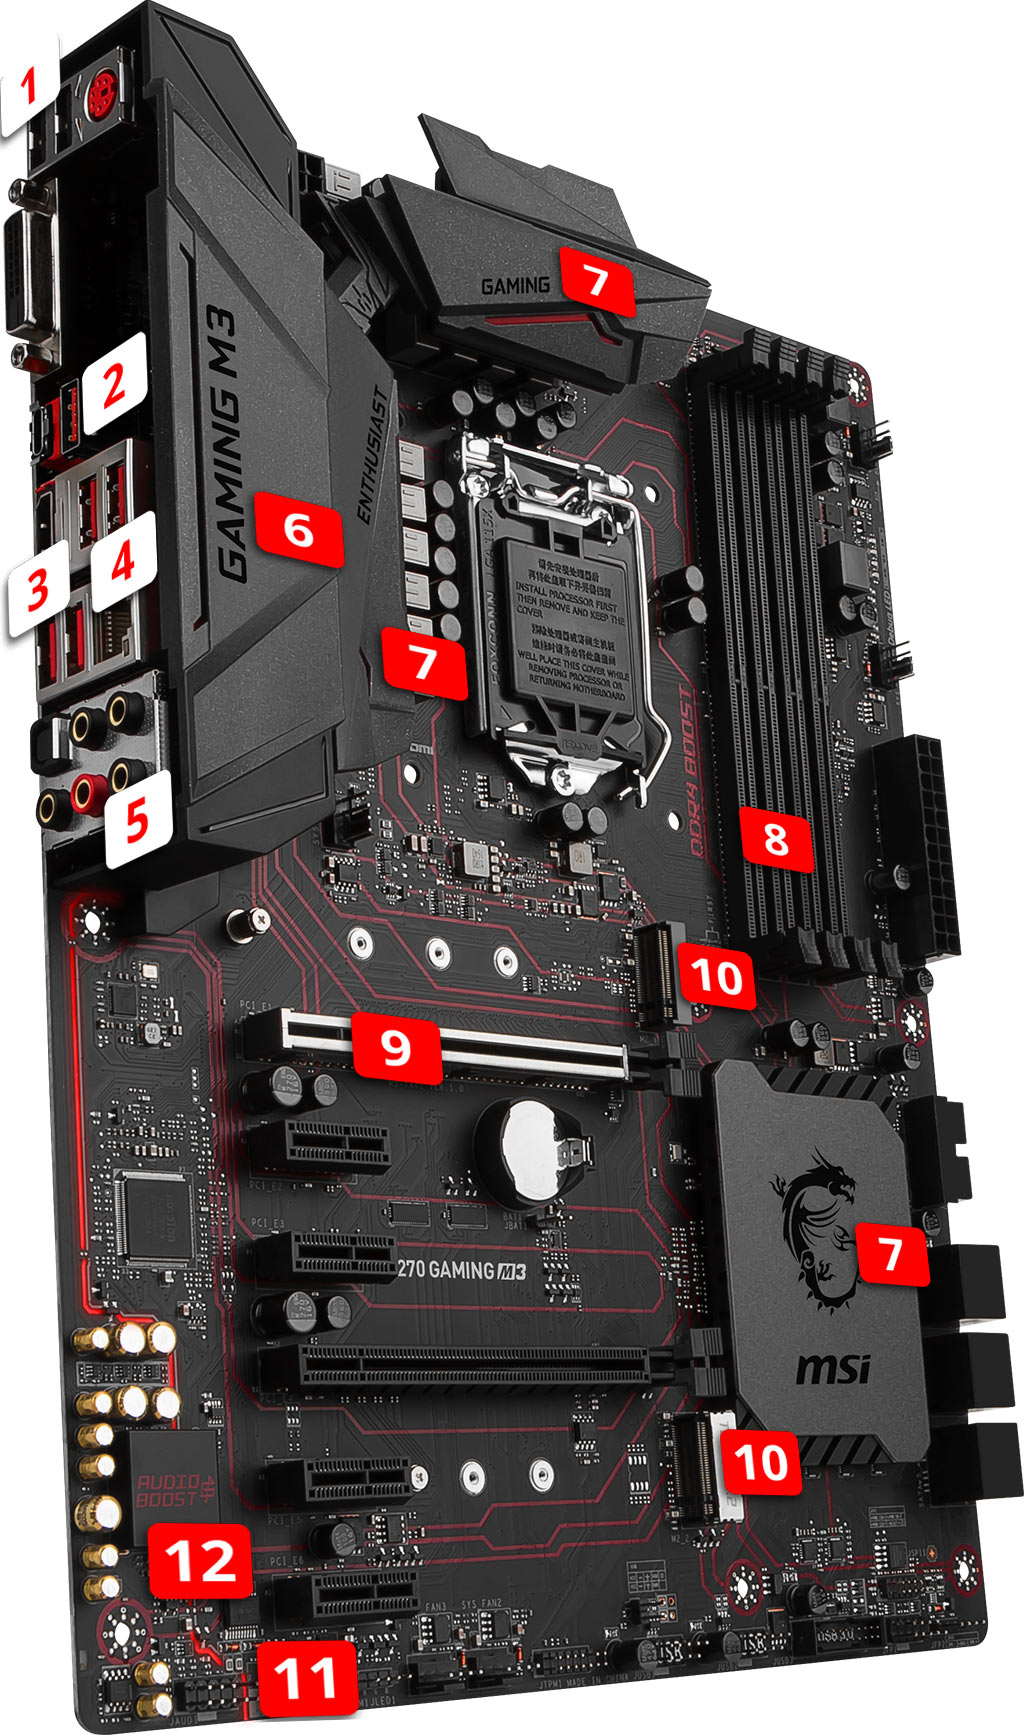 MSI H270 GAMING M3 overview